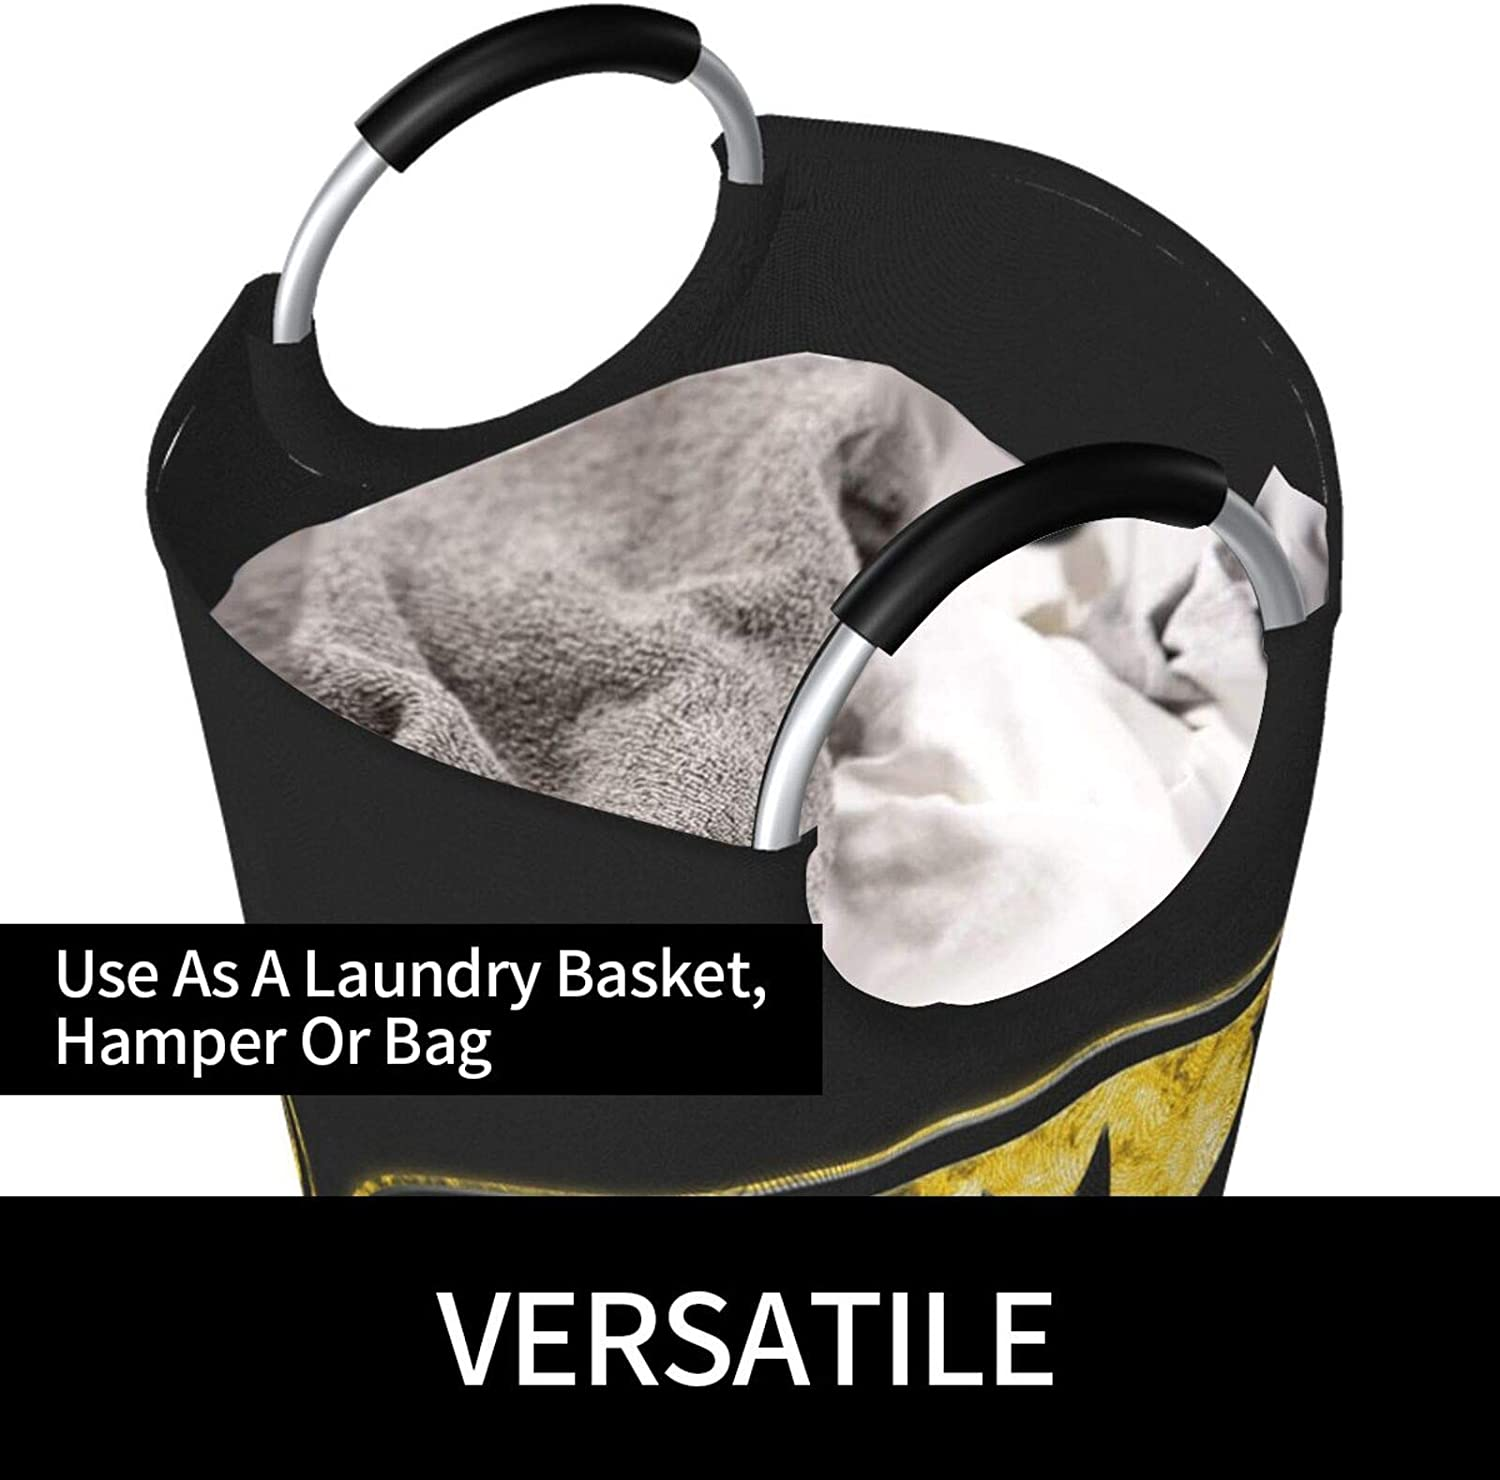 Foldable Clothes Laundry Bag with Handles HijingTT B-A-T-Man 82l Large Laundry Hamper Basket Waterproof Dirty Clothes Basket for Clothing Quilts Sheets Towels Toy Puppets